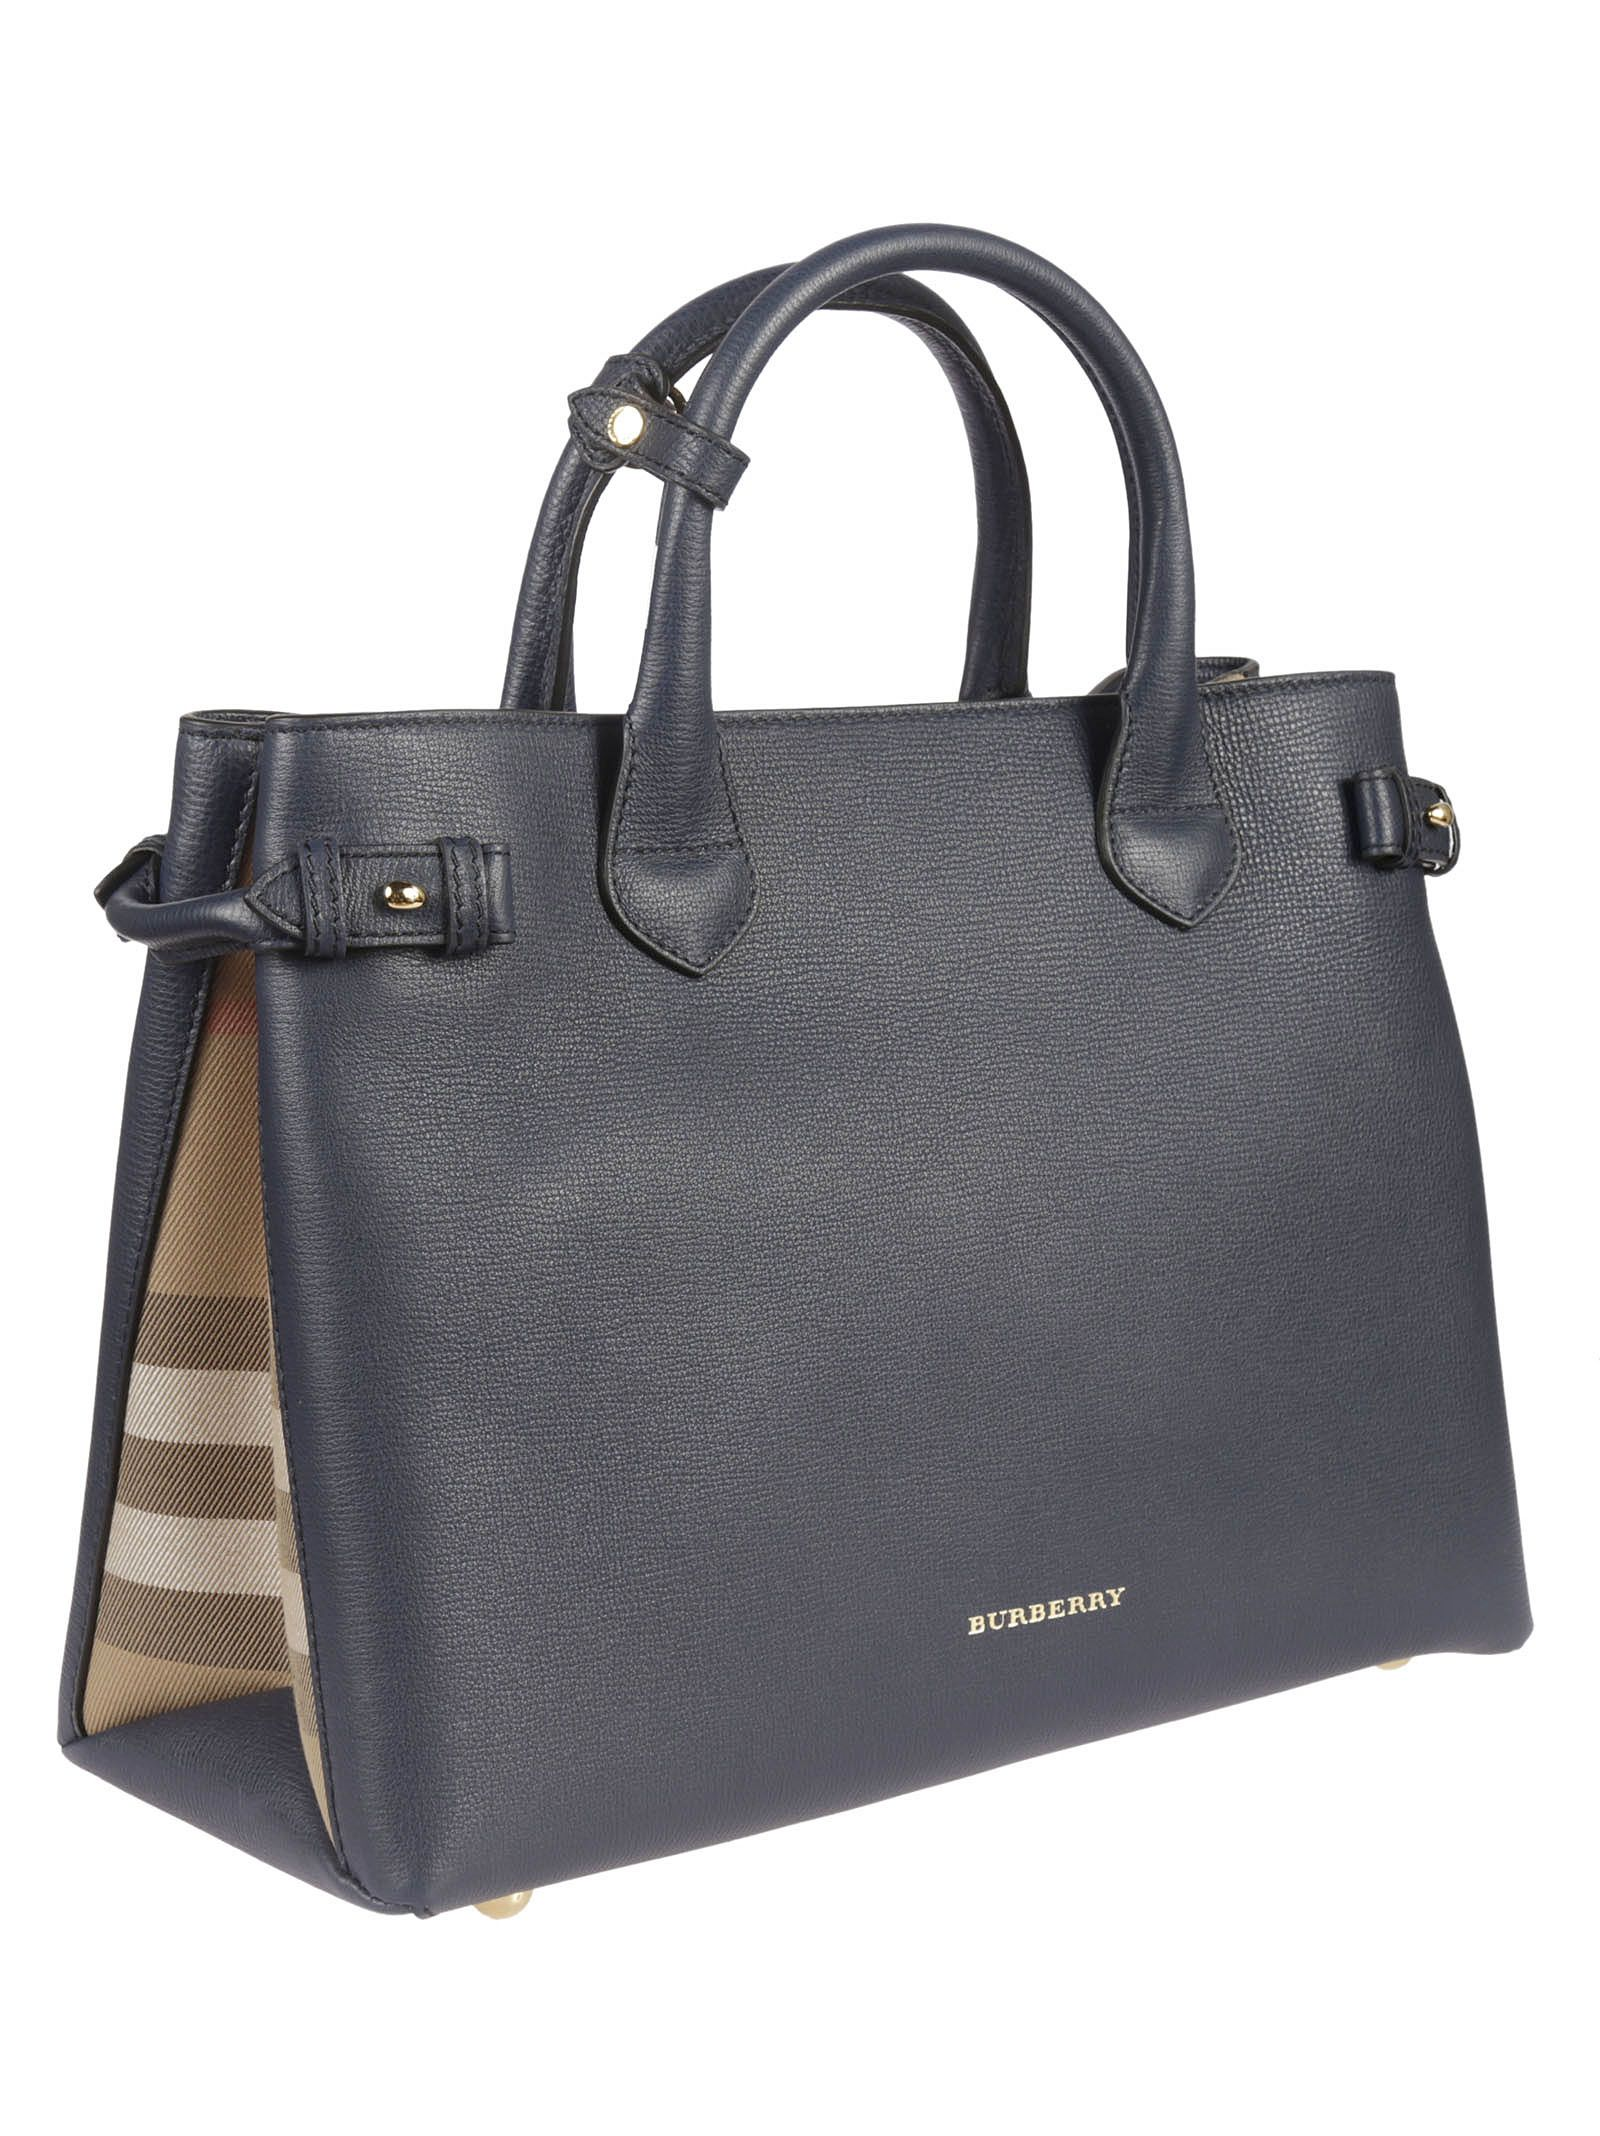 ca7a591b1f67 ... Burberry House Check Tote - Ink Blue ...